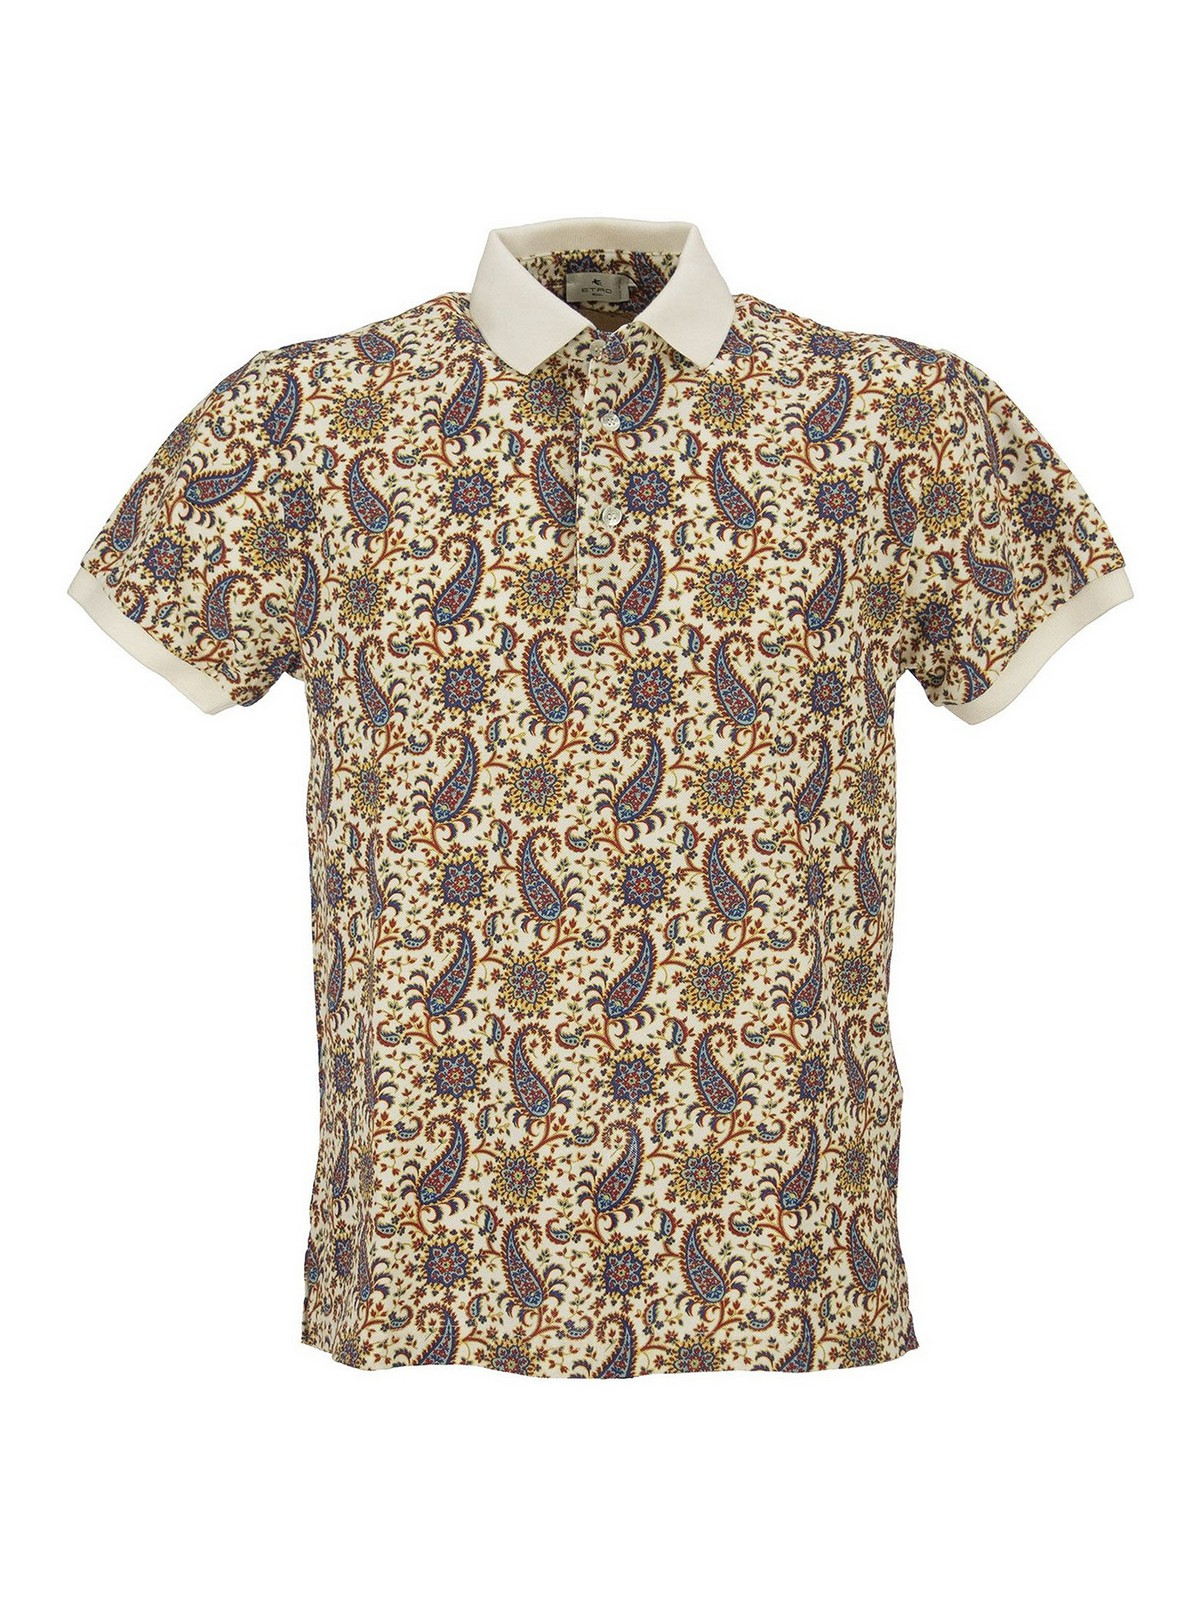 Etro FLORAL PAISLEY PATTERNED POLO